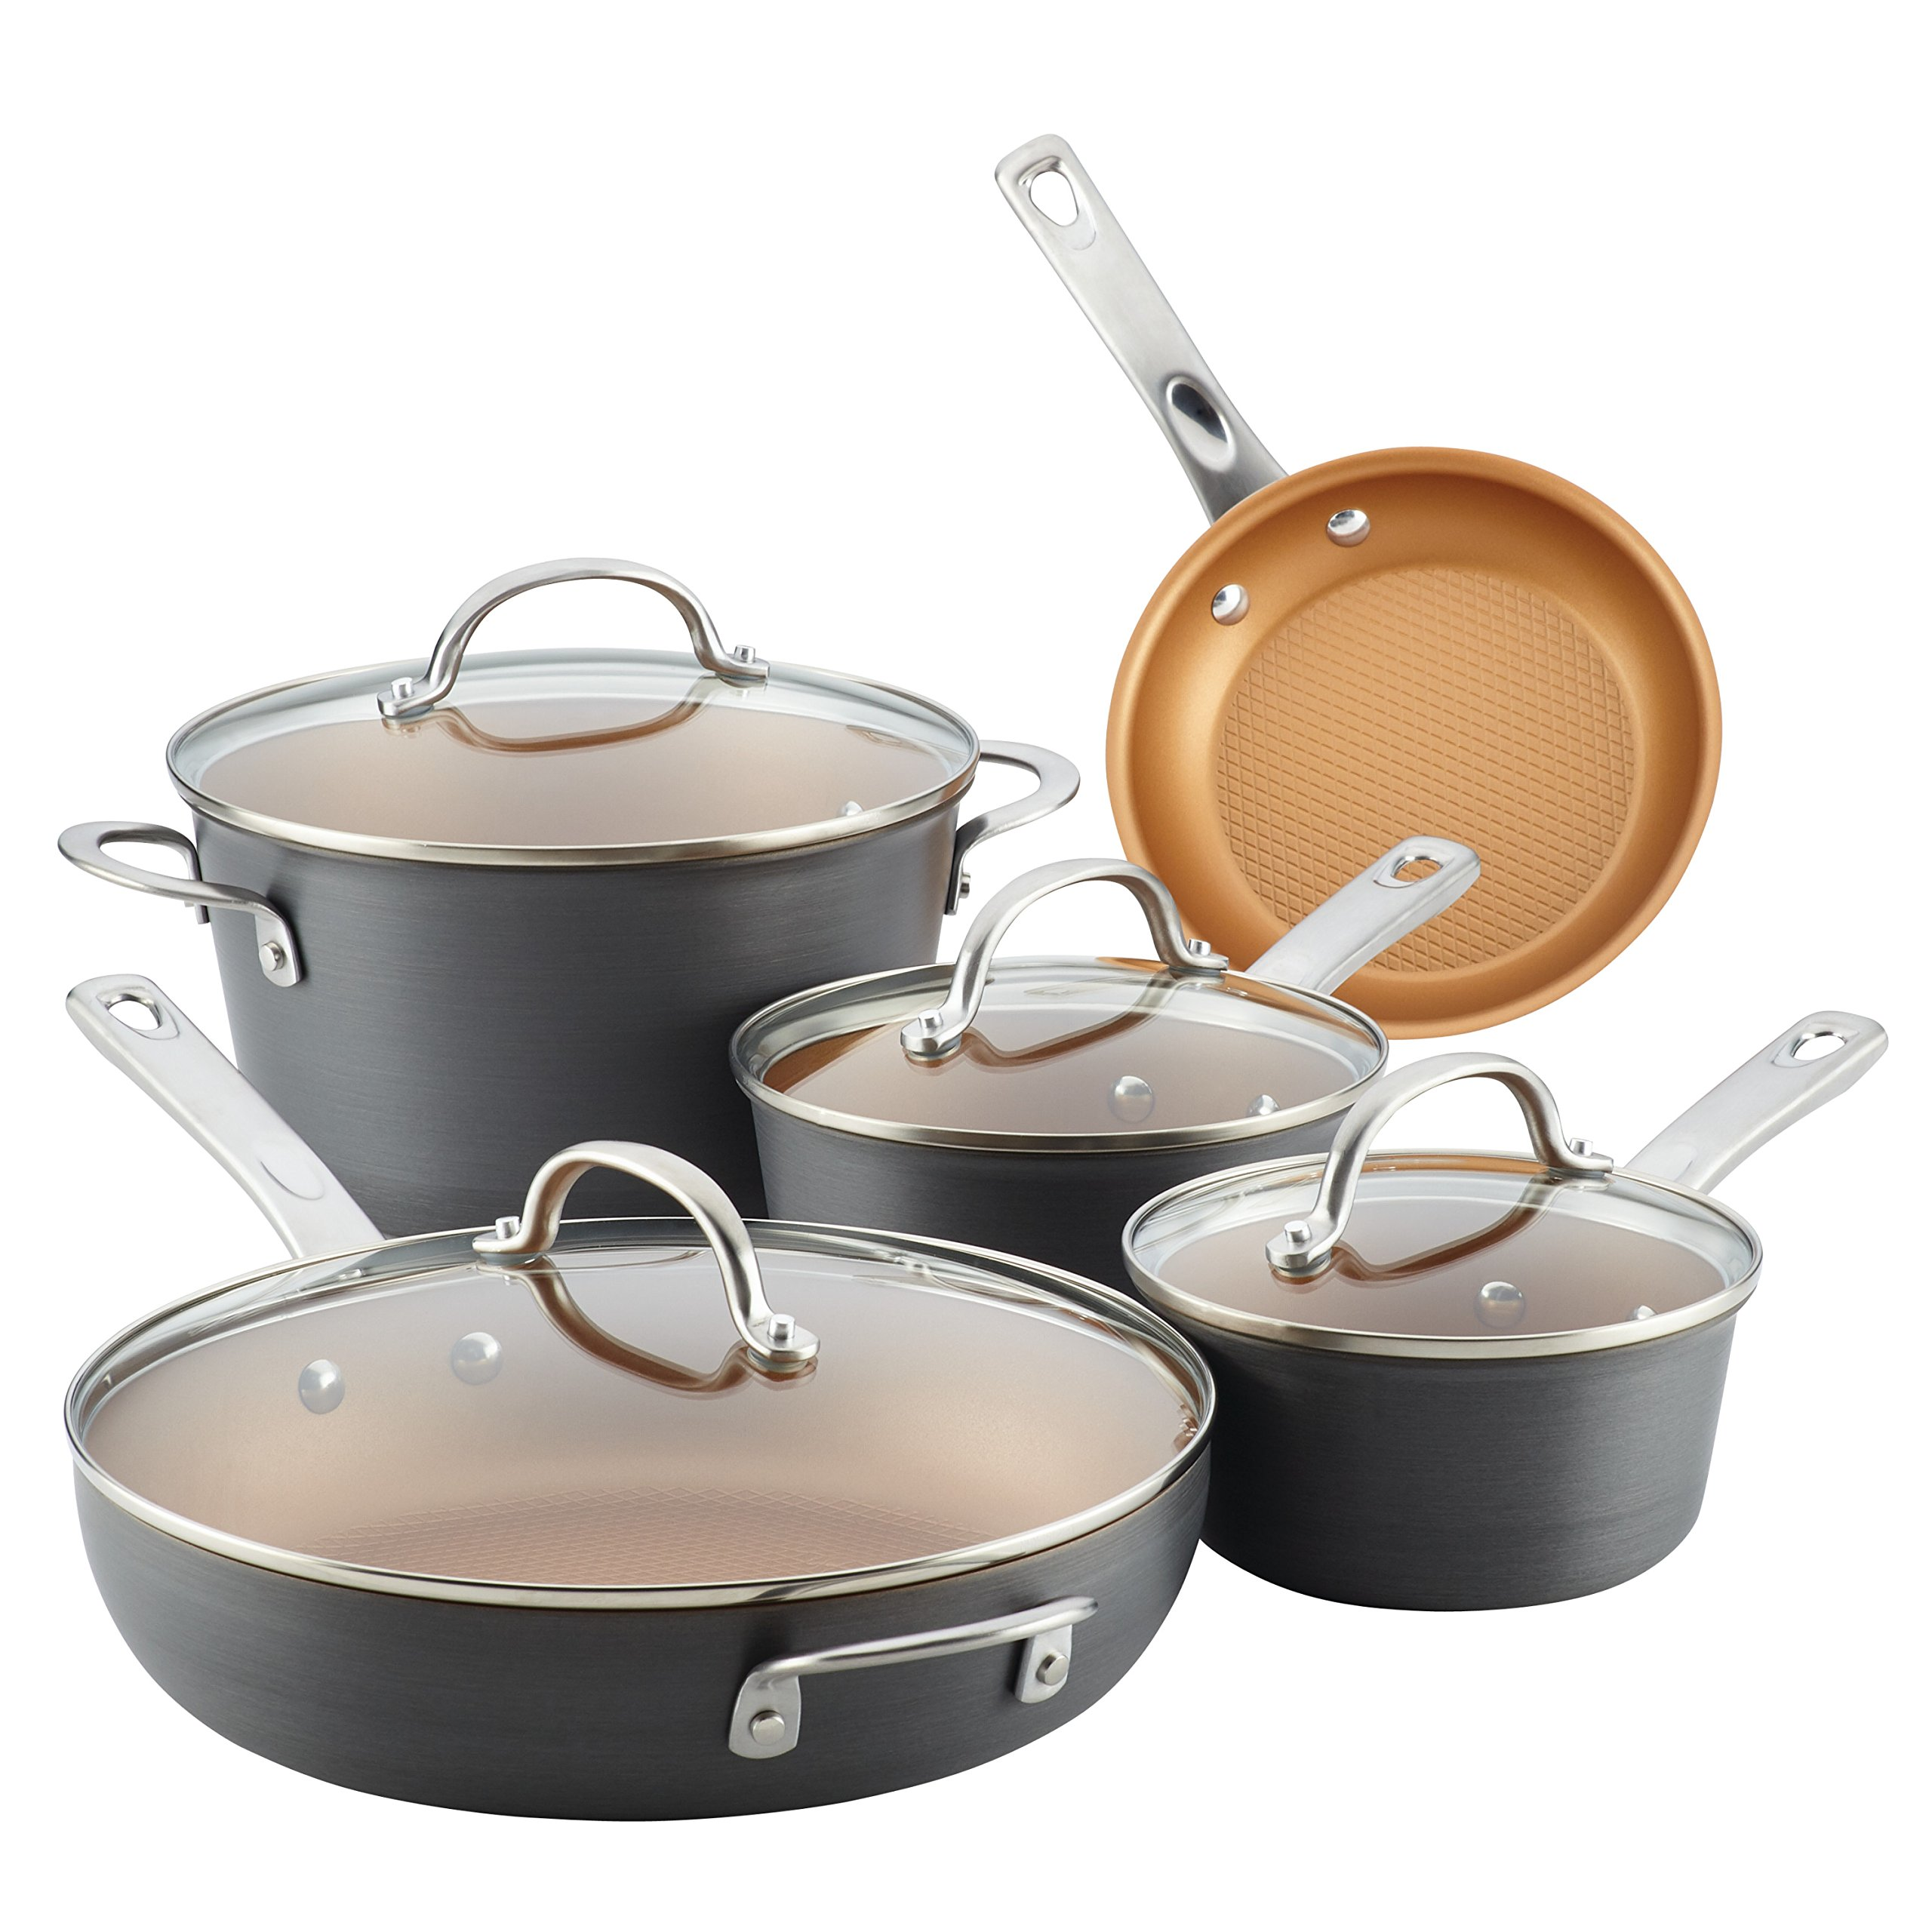 Ayesha Curry Home Collection Hard Anodized Aluminum Cookware Set, 9-Piece